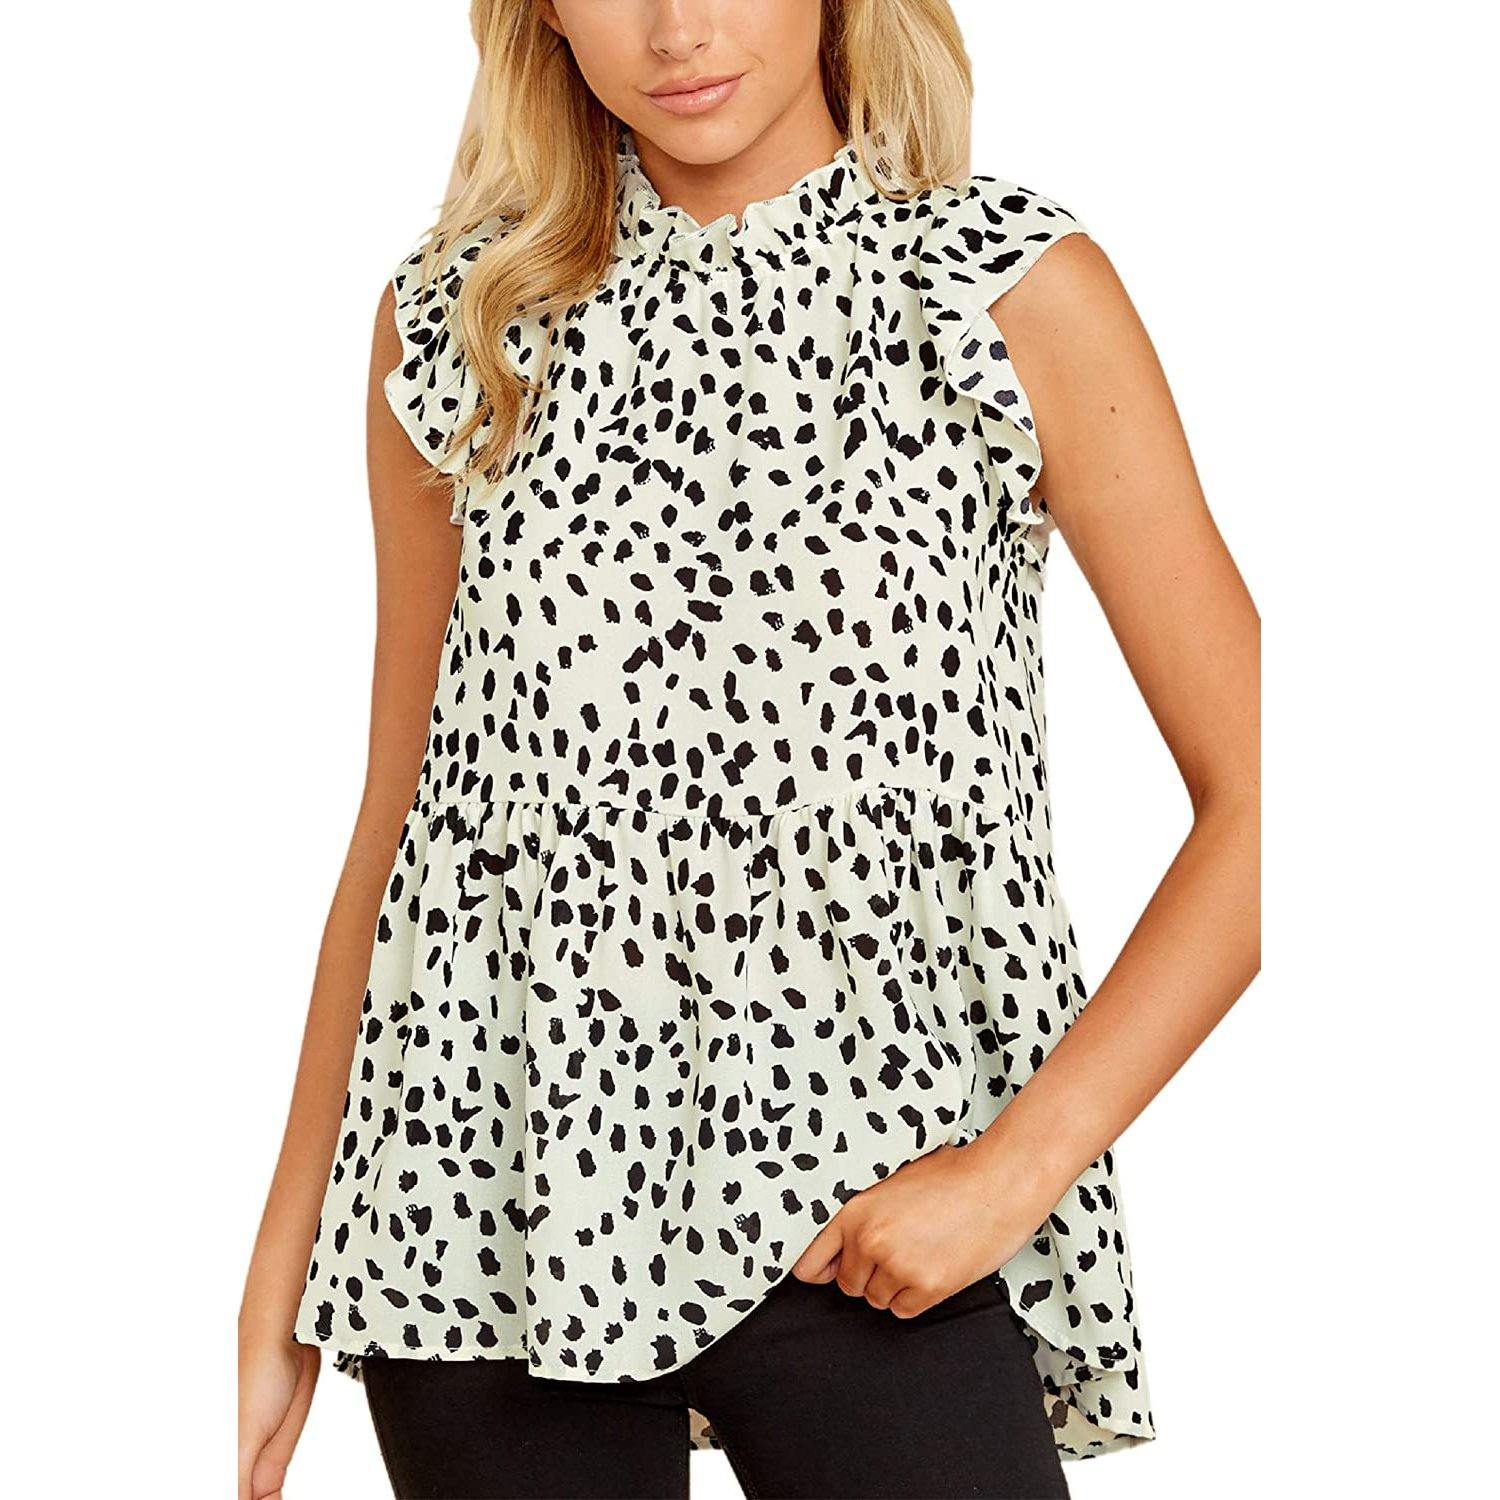 Angashion Women's Casual Floral Print Babydoll Blouse Tunic Tops / White / Small